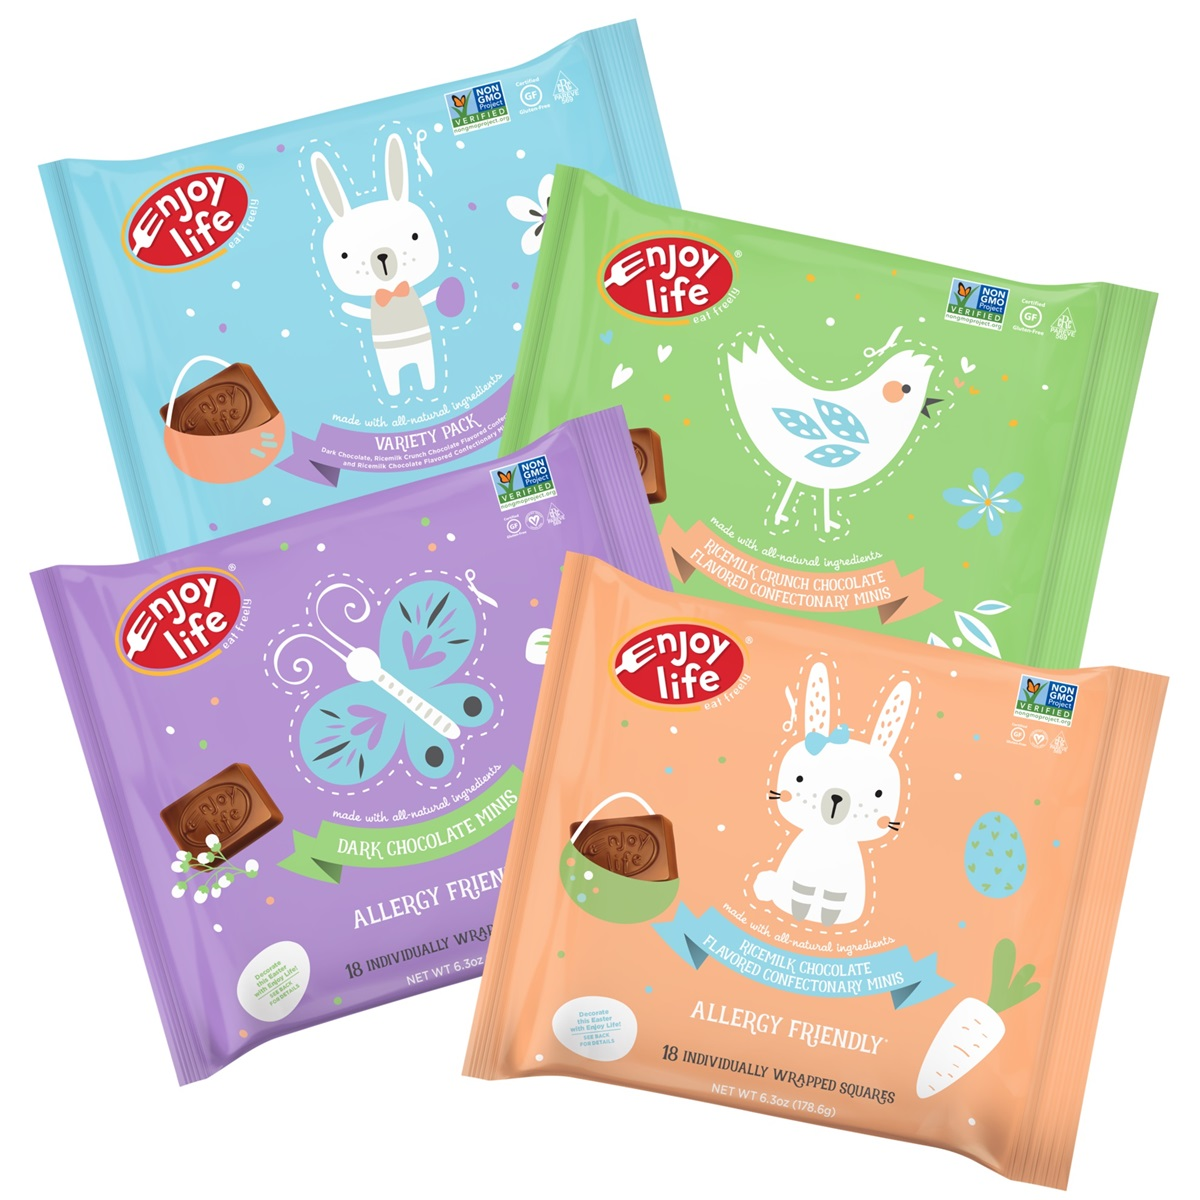 The Dairy-Free Chocolate Easter Bunny and More Round-Up - vegan with gluten-free and allergy-friendly options - including creme-filled eggs and white chocolate treats! Pictured: Enjoy Life Easter Chocolate